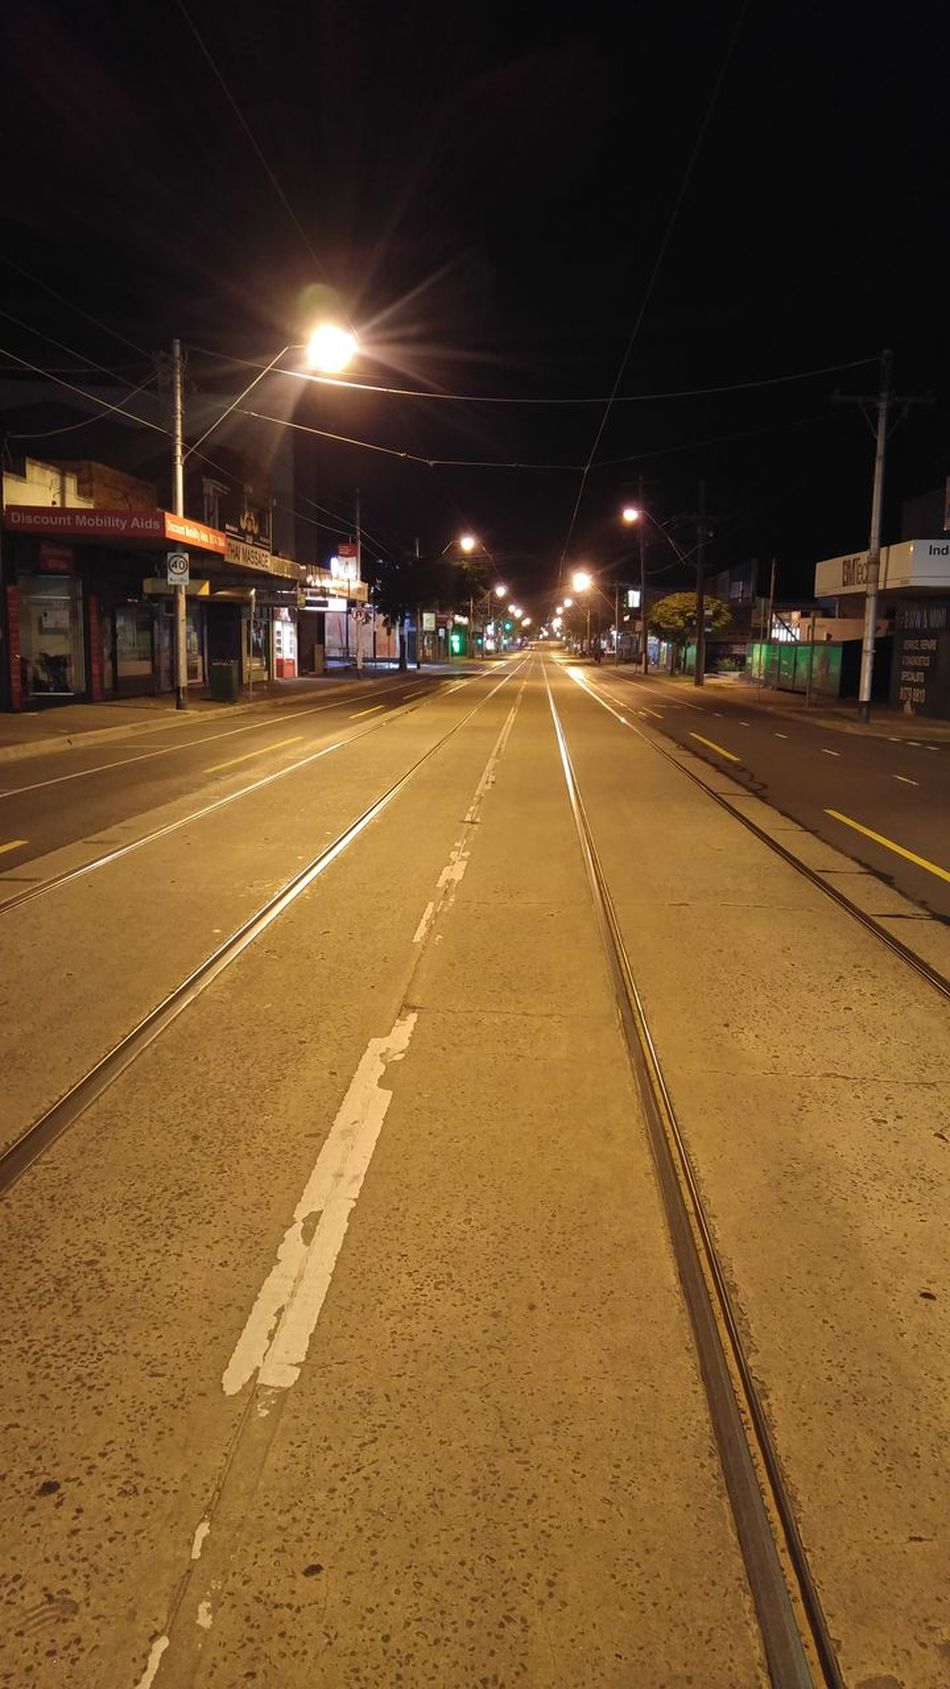 2am Kroad Northessendon Nofilter Tram59 BestEyeemShots Picoftheday